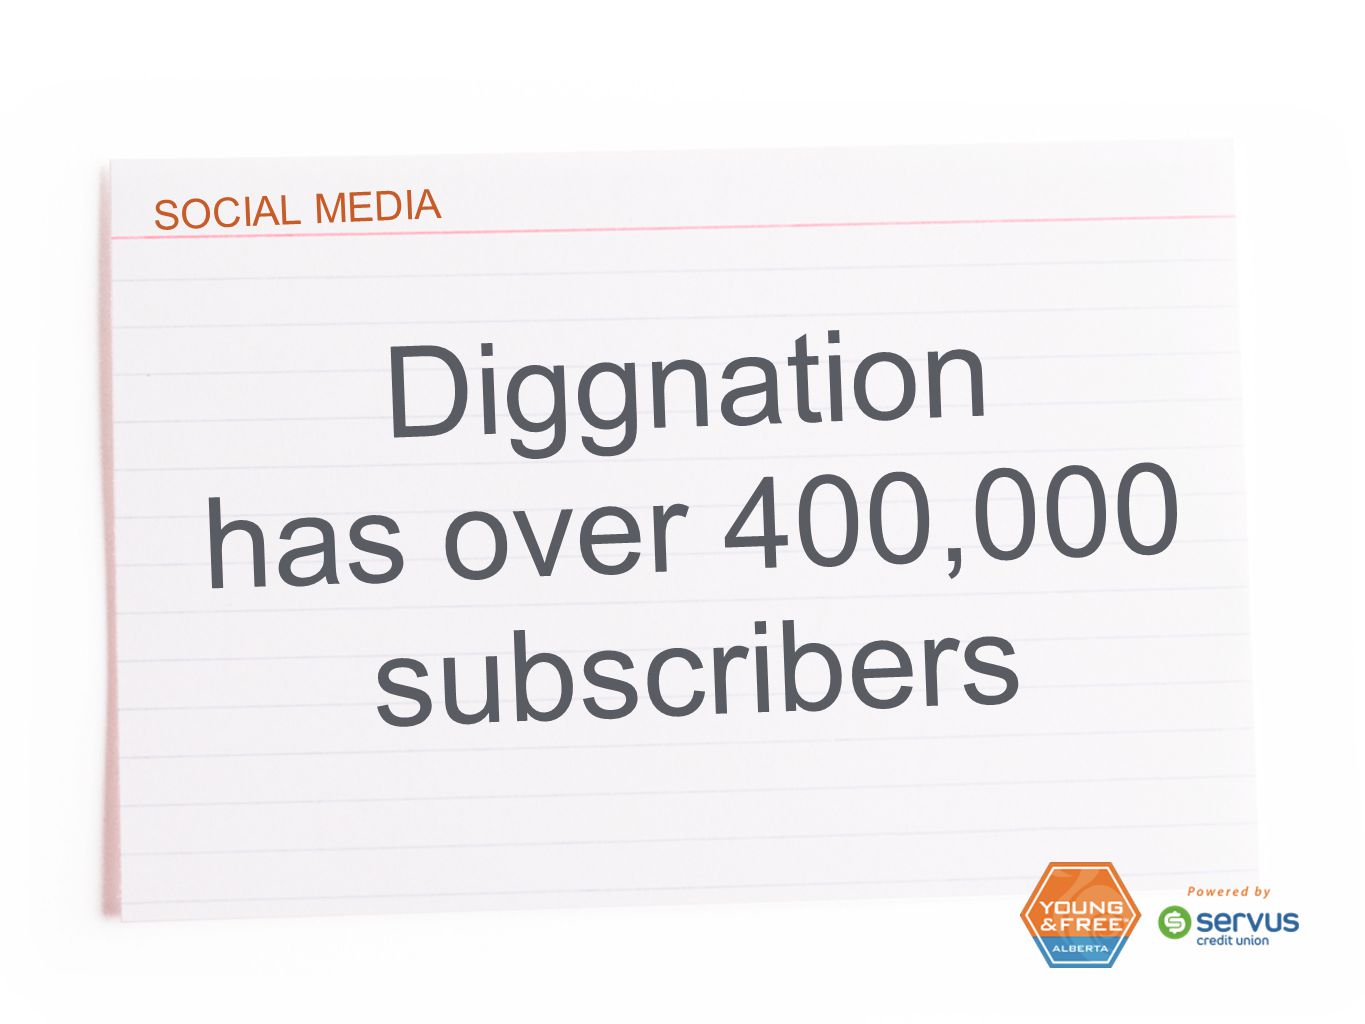 SOCIAL MEDIA Diggnation has over 400,000 subscribers